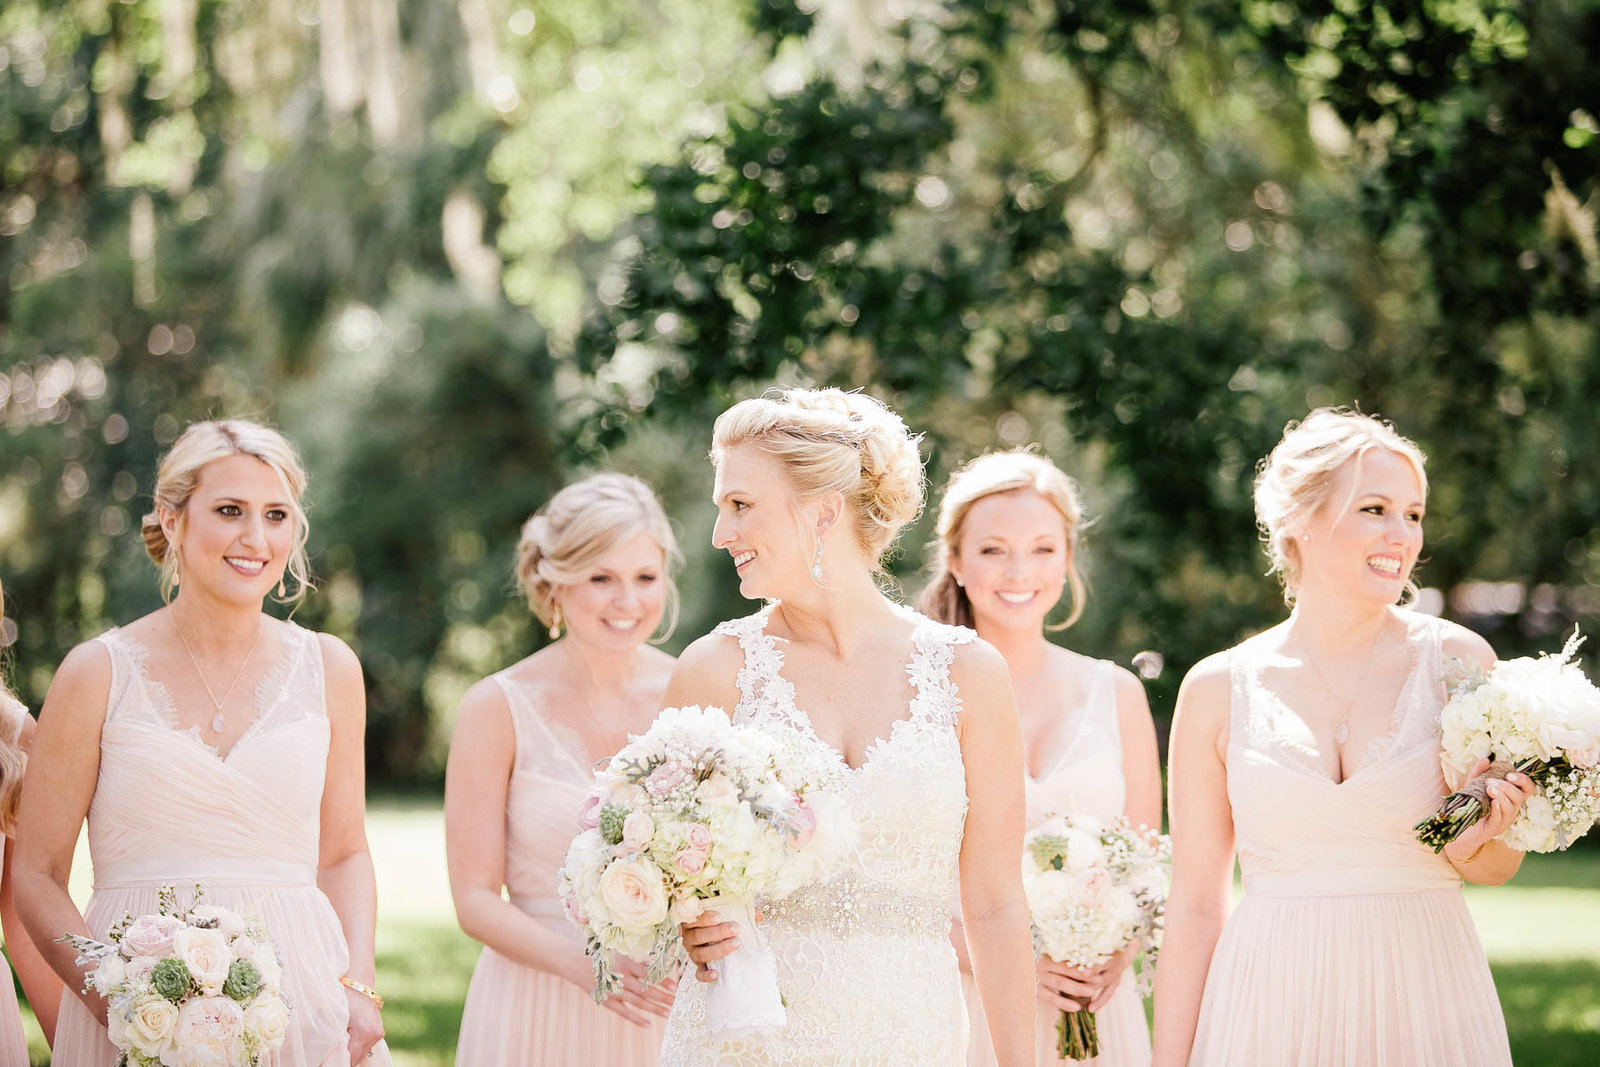 bride-bridesmaids-magnolia-plantation-charleston-sc-lowcountry-wedding-kate-timbers-photography2122